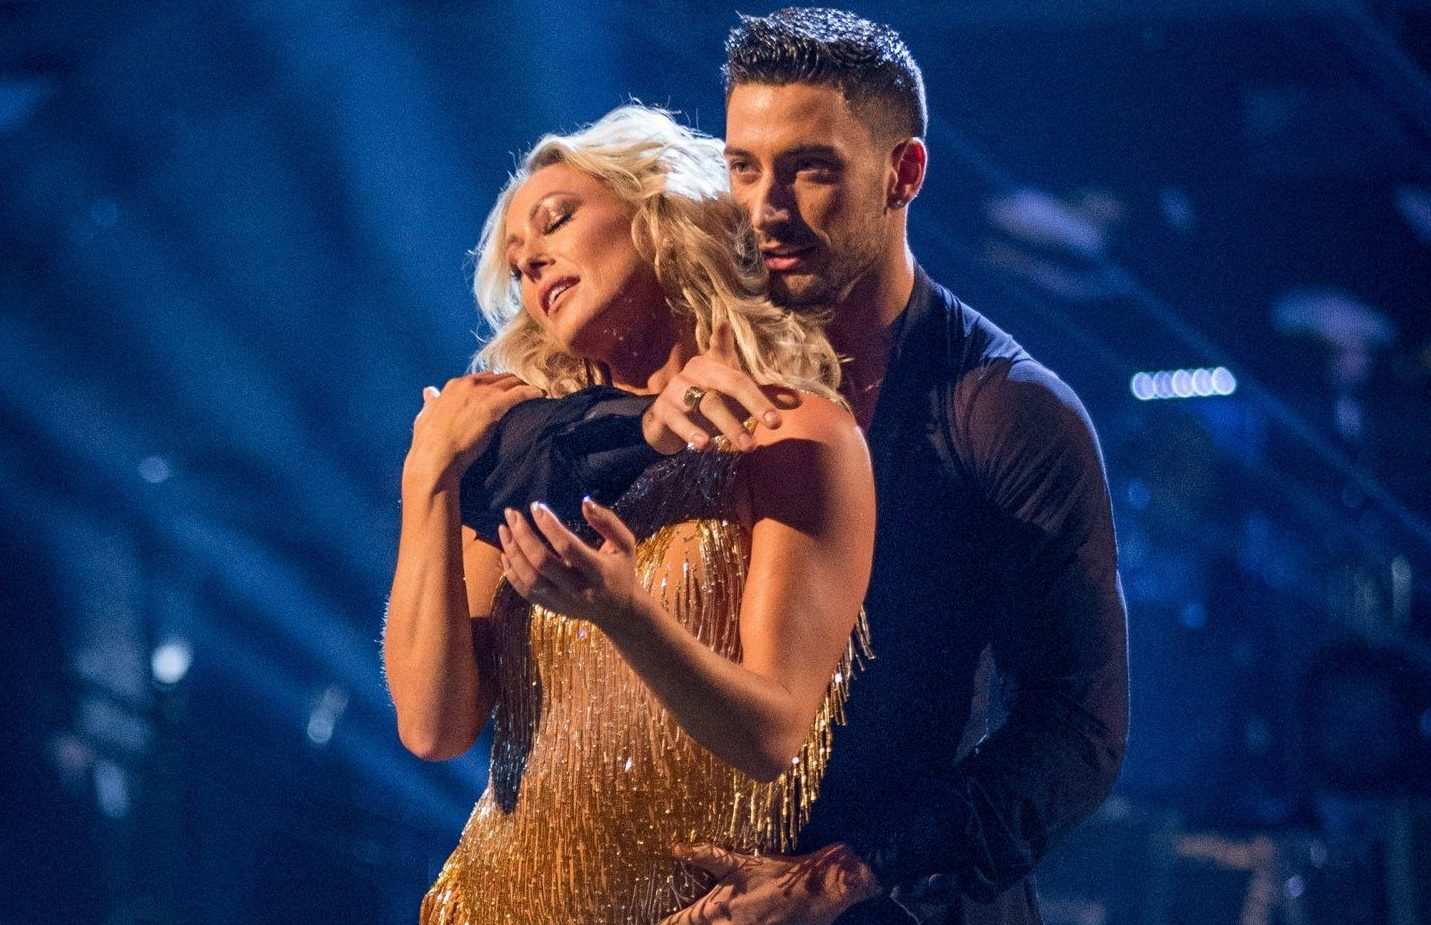 For use in UK, Ireland or Benelux countries only Undated BBC handout photo of Faye Tozer and Giovanni Pernice. PRESS ASSOCIATION Photo. Issue date: Saturday October 13, 2018. See PA story SHOWBIZ Strictly. Photo credit should read: Guy Levy/BBC/PA Wire NOTE TO EDITORS: Not for use more than 21 days after issue. You may use this picture without charge only for the purpose of publicising or reporting on current BBC programming, personnel or other BBC output or activity within 21 days of issue. Any use after that time MUST be cleared through BBC Picture Publicity. Please credit the image to the BBC and any named photographer or independent programme maker, as described in th